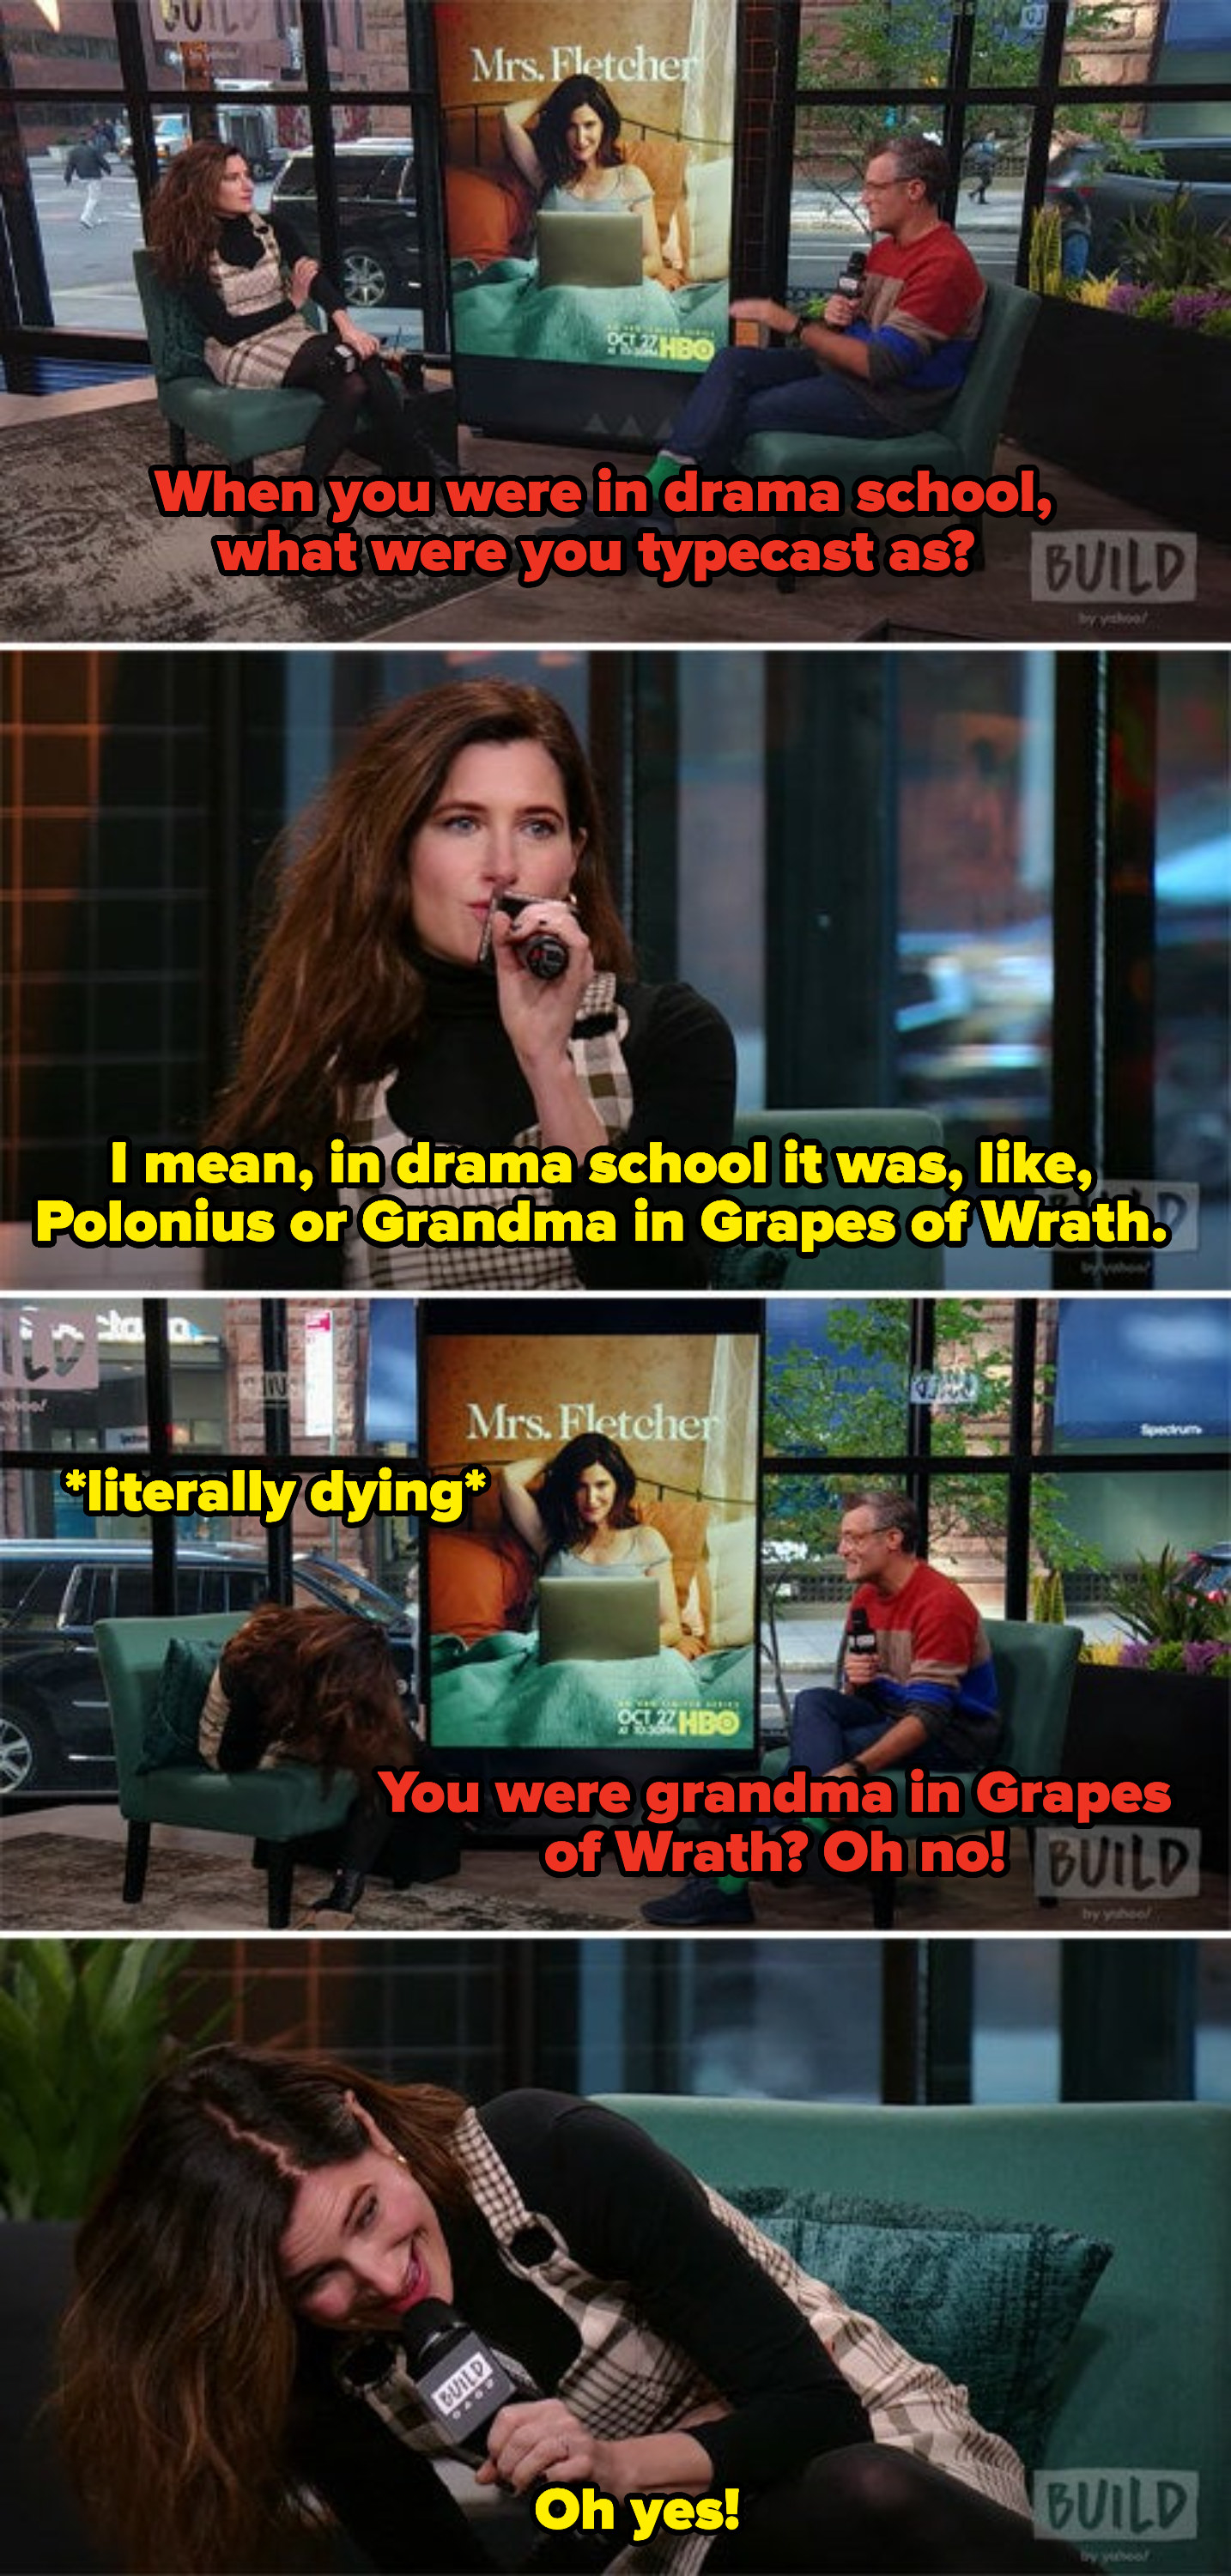 Kathryn saying her typecast in drama school was Polonius or grandma in Grapes of Wrath